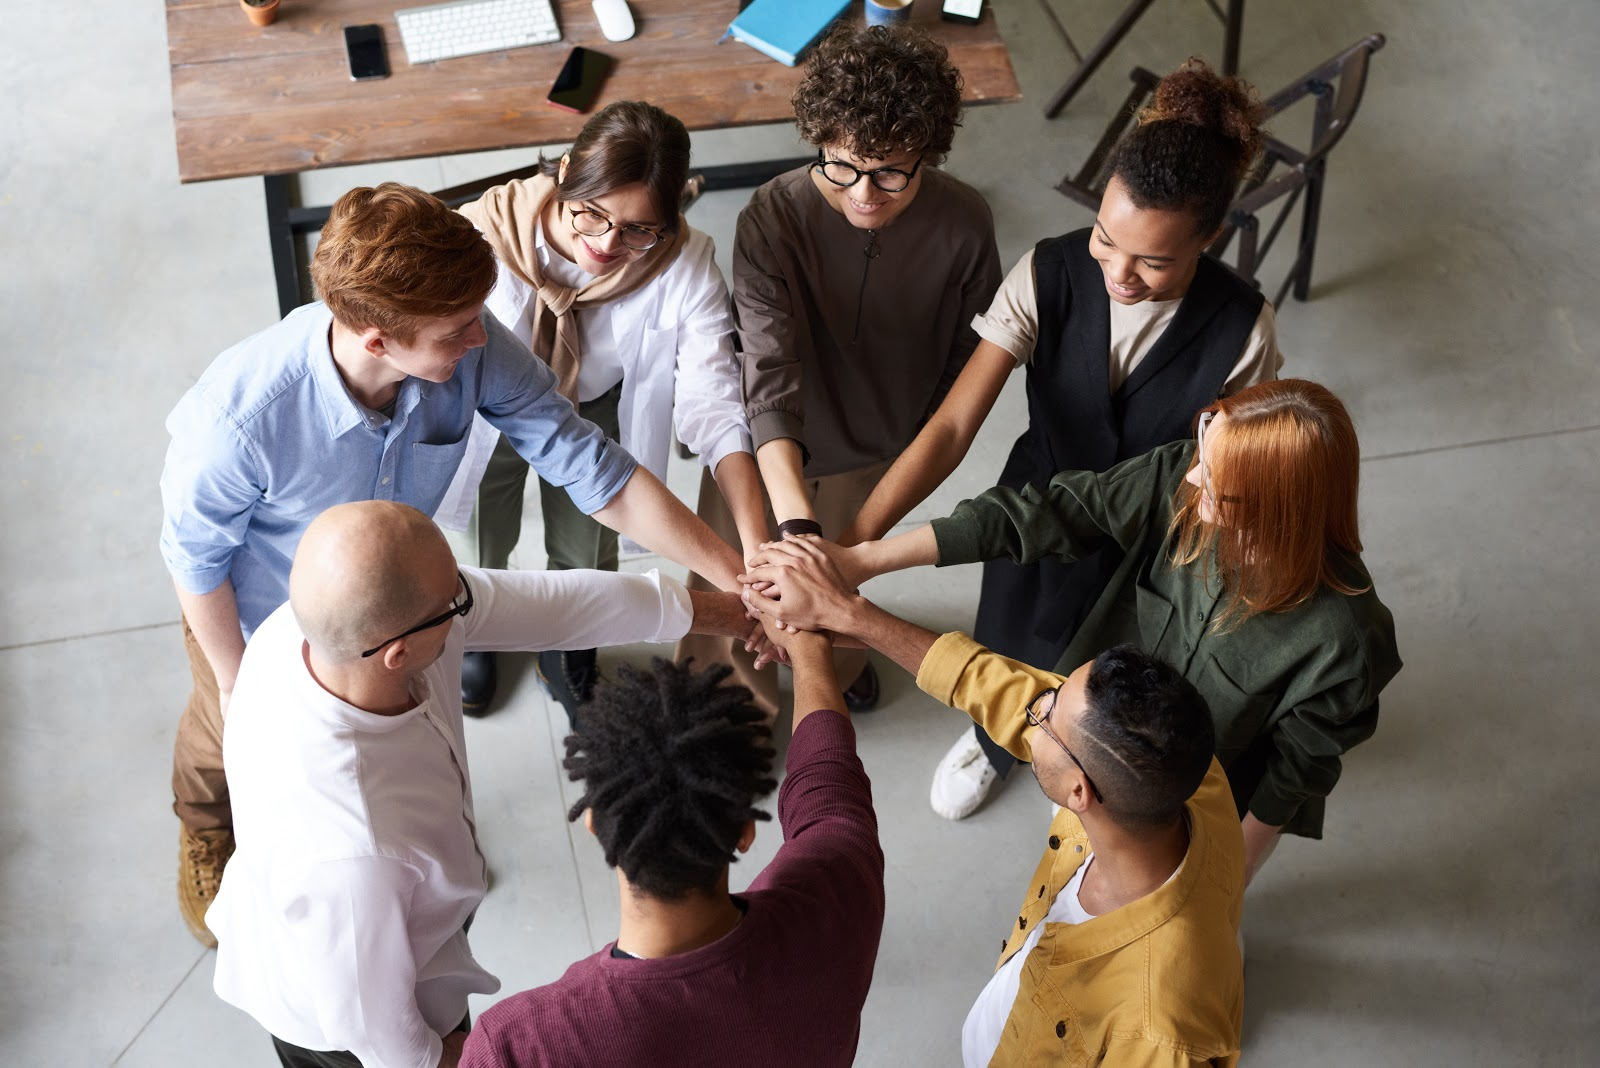 A good project manager knows how to make the team more productive